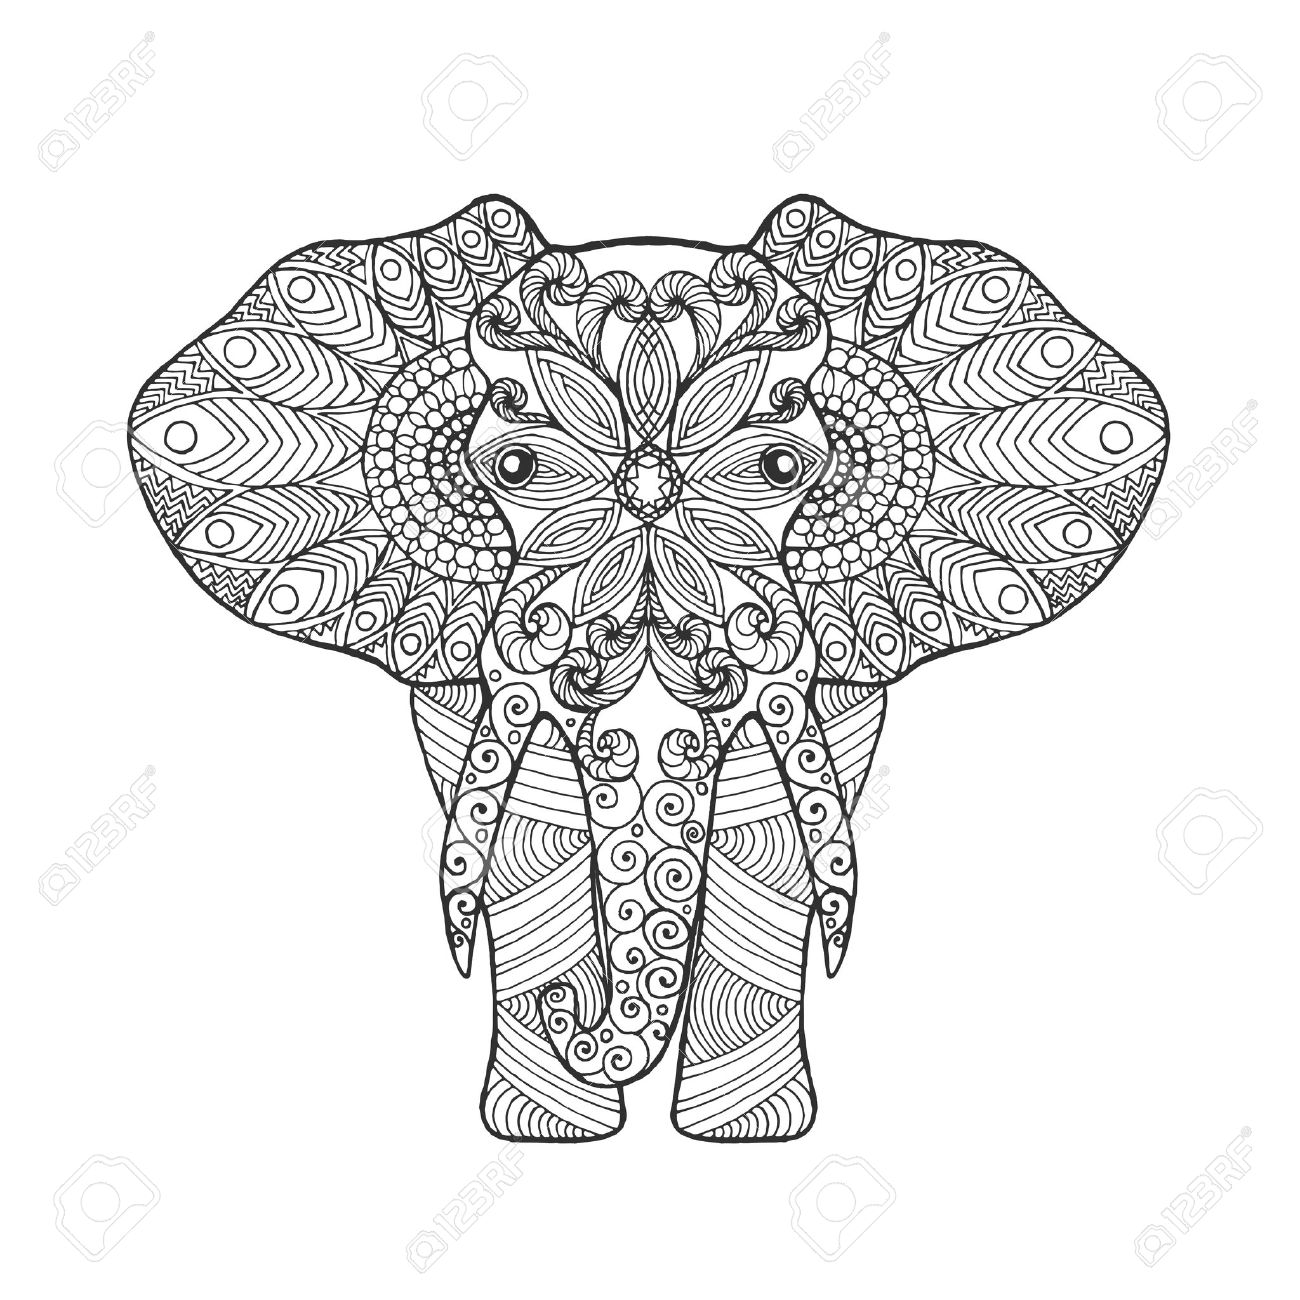 elephant adult antistress coloring page black white hand drawn doodle animal ethnic patterned - Coloring Page Elephant Design